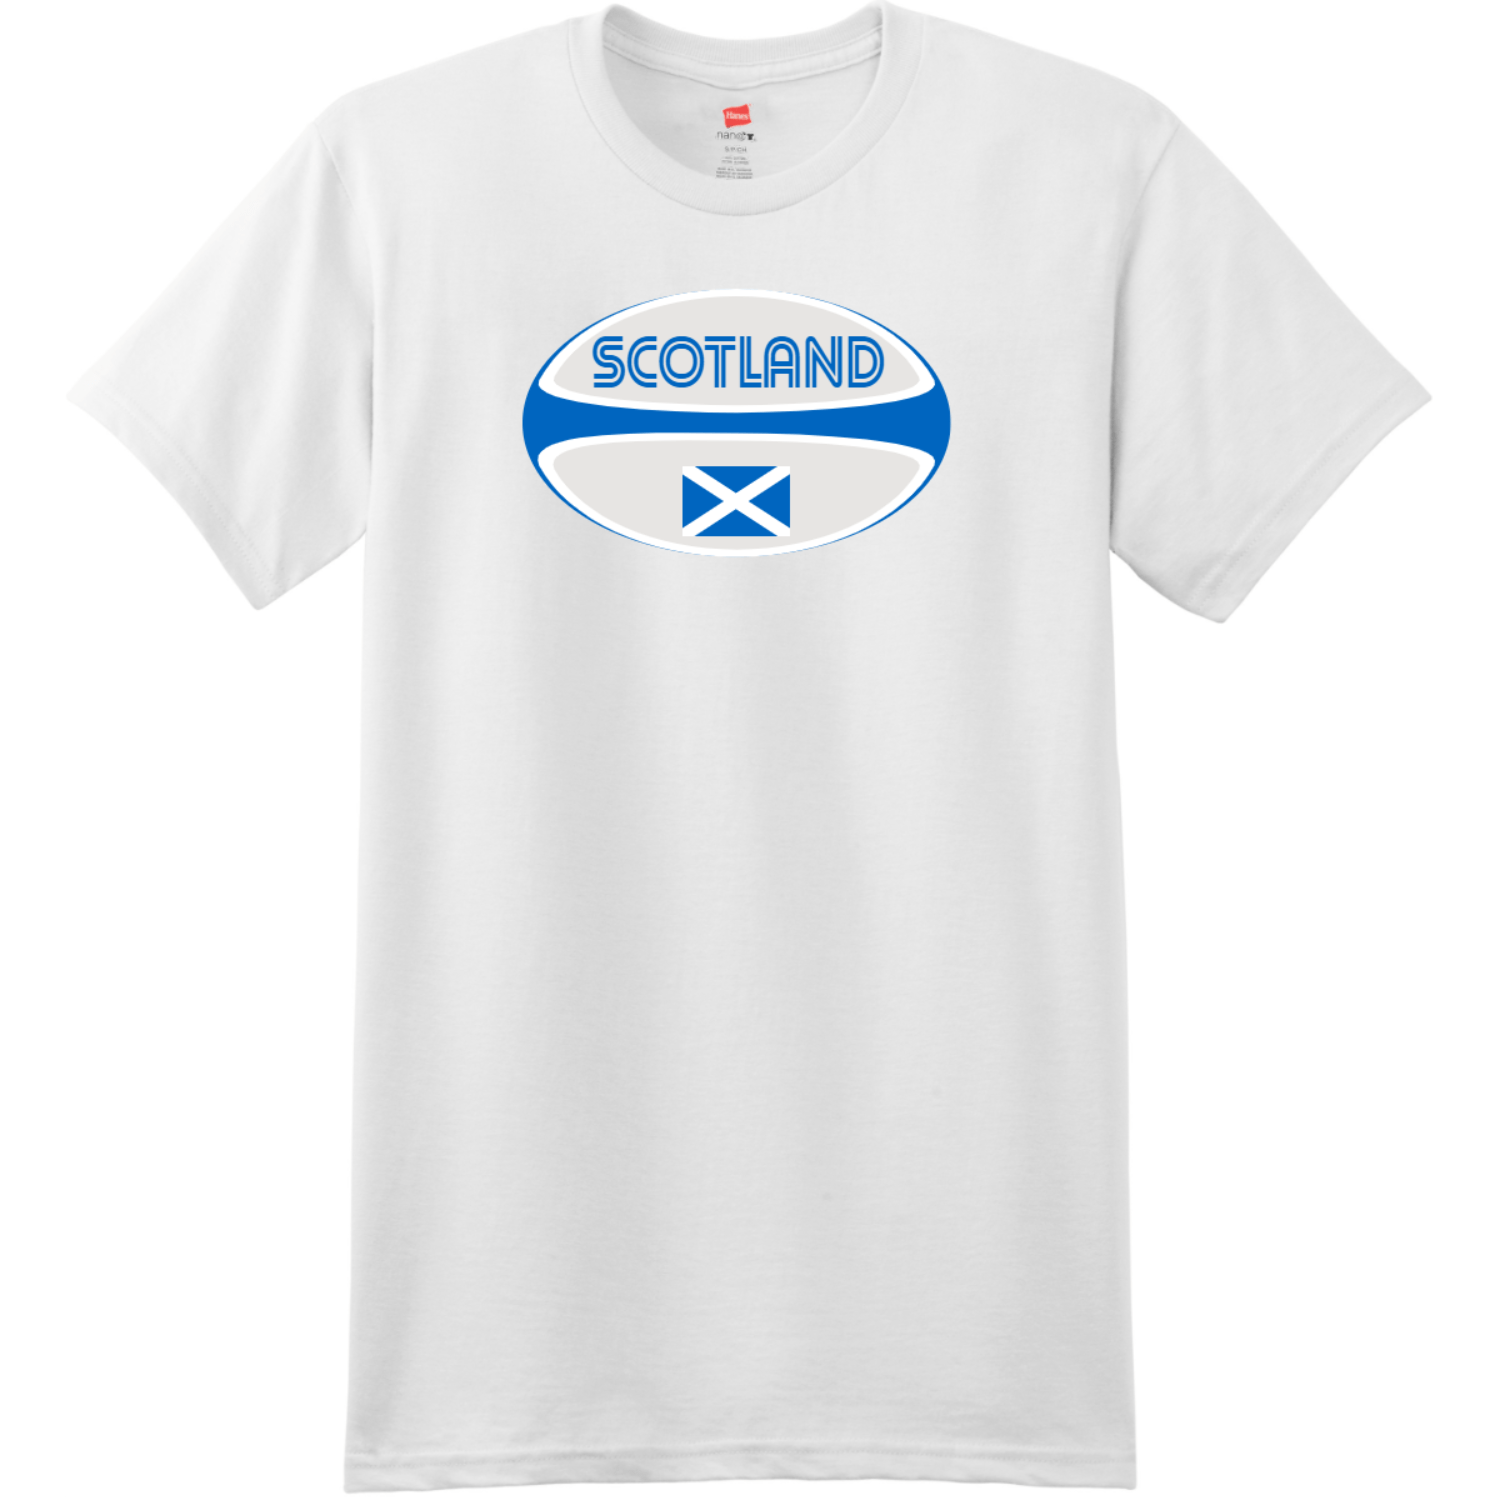 Scotland Rugby Ball T-Shirt White Hanes Nano 4980 Ringspun Cotton T Shirt